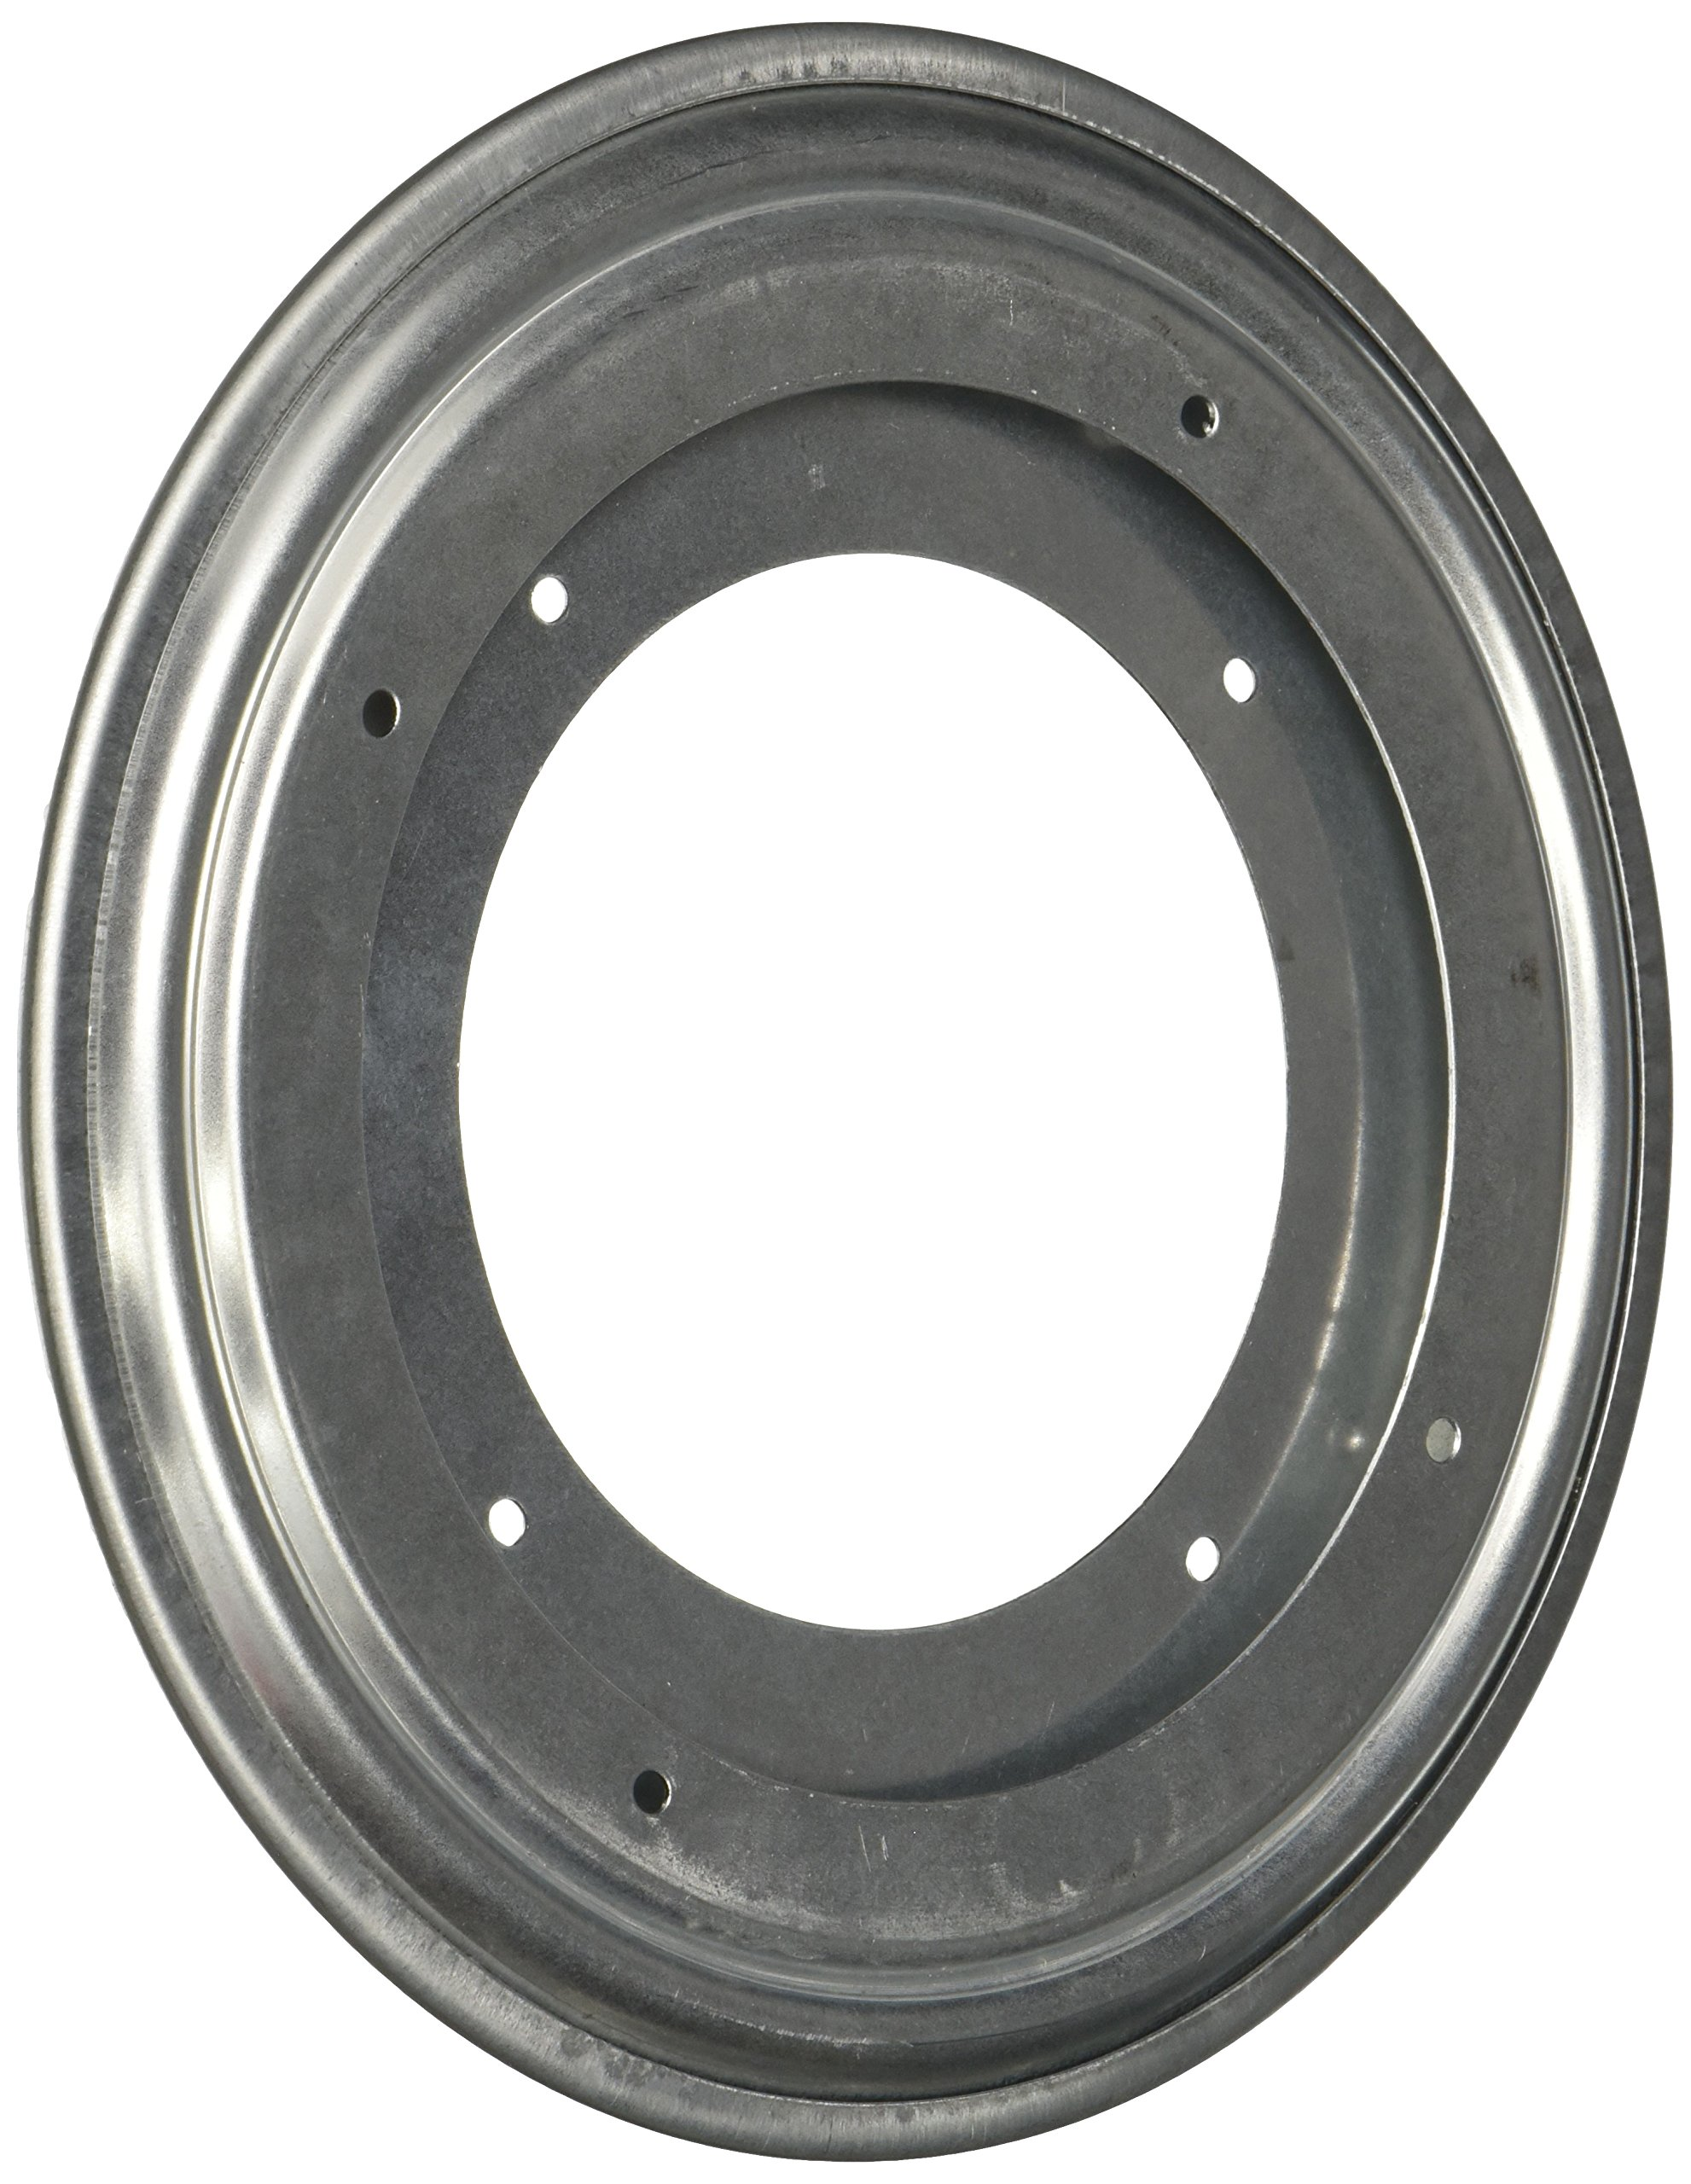 Two 8'' Inch Lazy Susan Round Turntable Bearings - 5/16 Thick & 700 LB Capacity